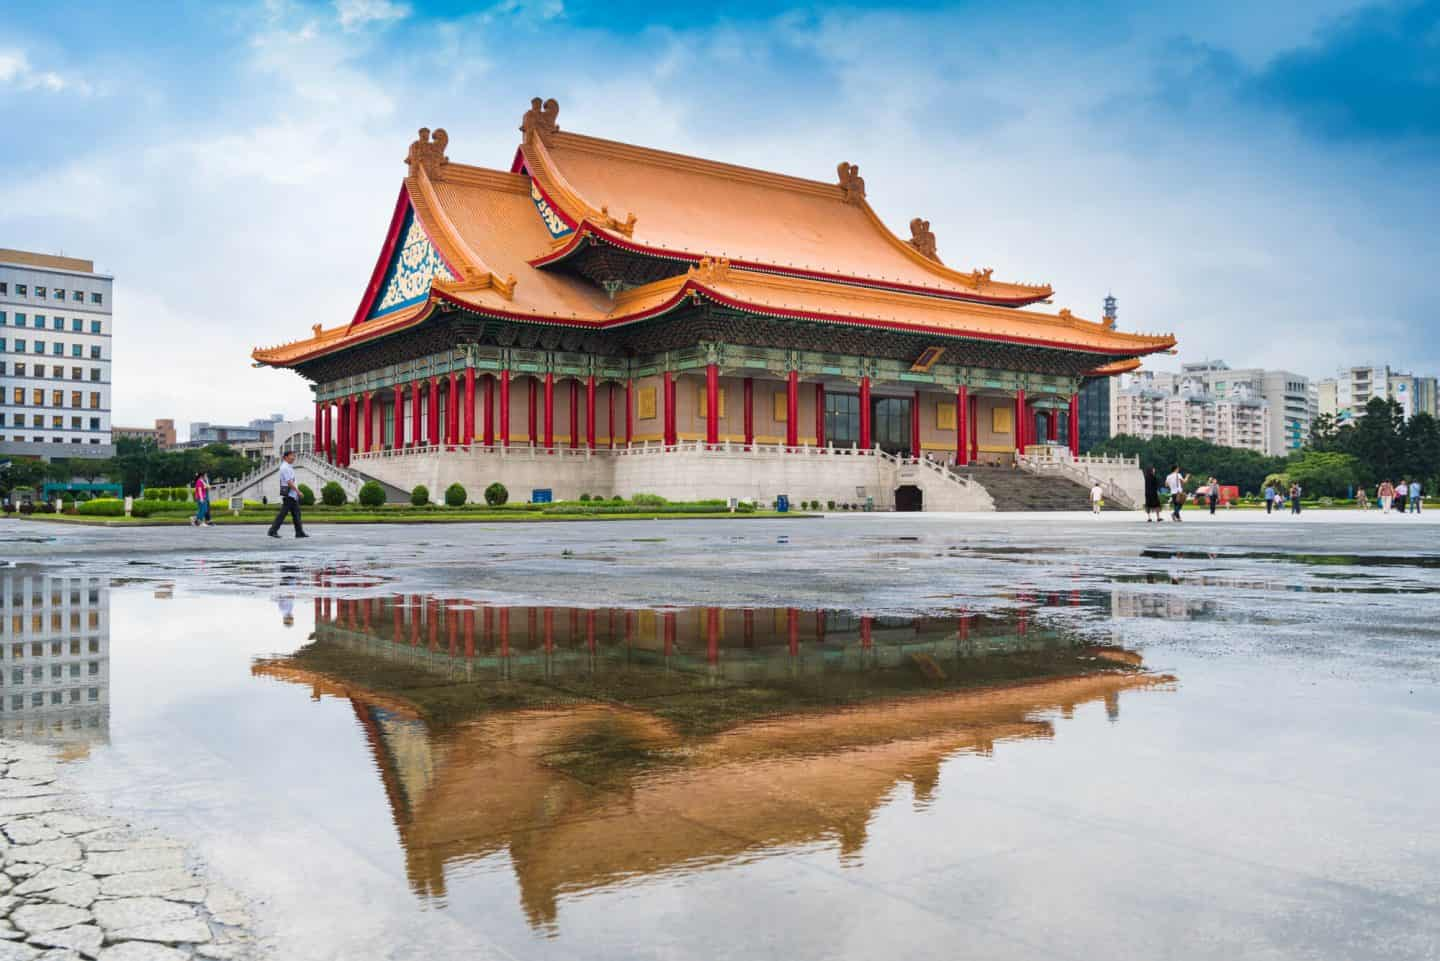 Chaing Kai Shek Memorial Hall